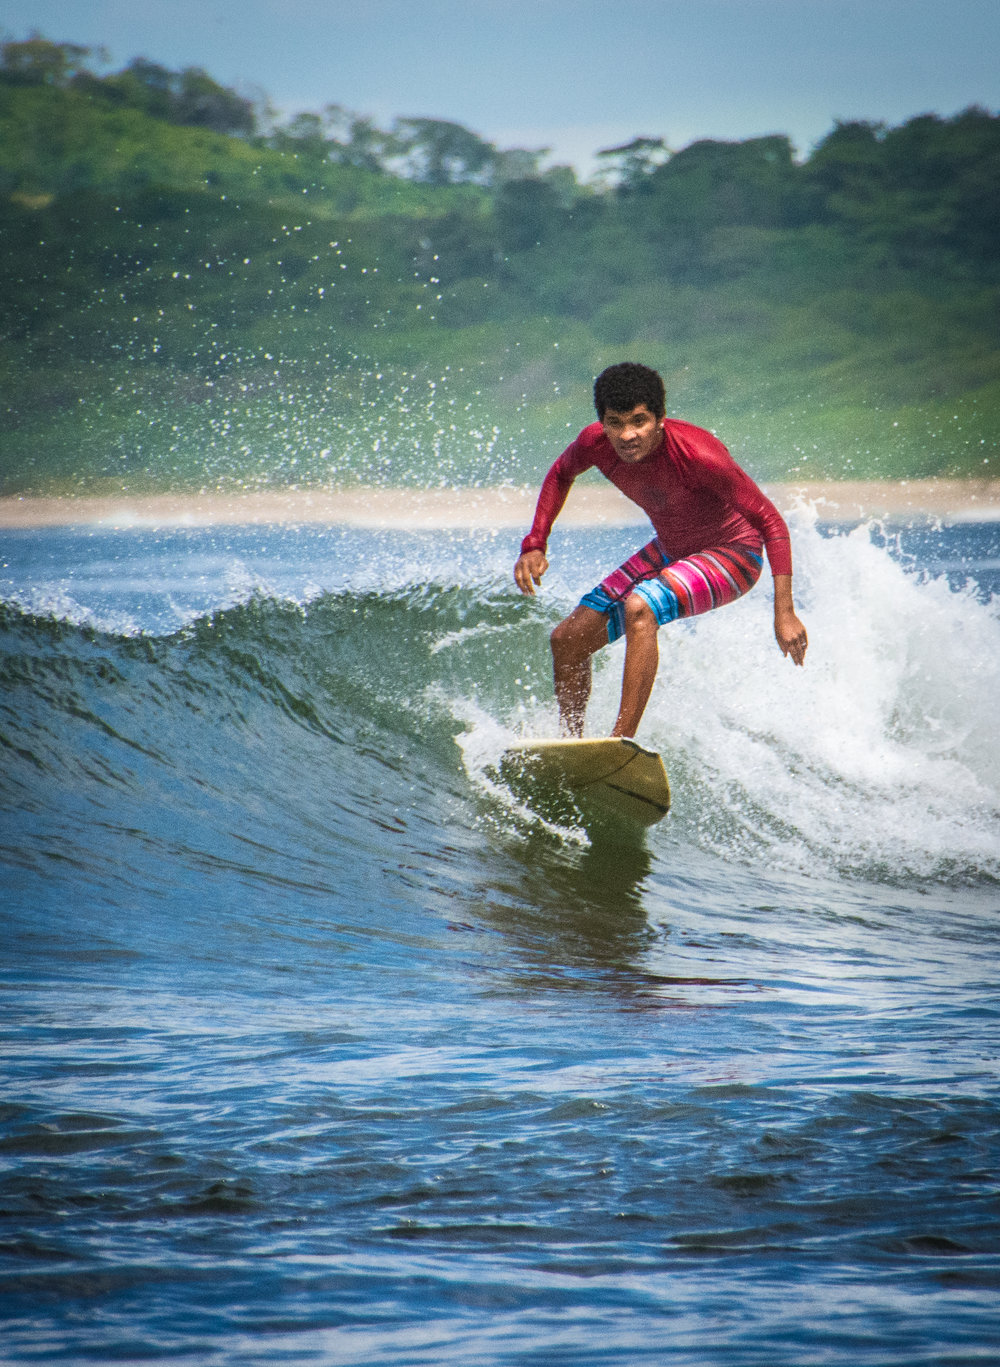 Surfing in Tamarindo, Costa Rica.